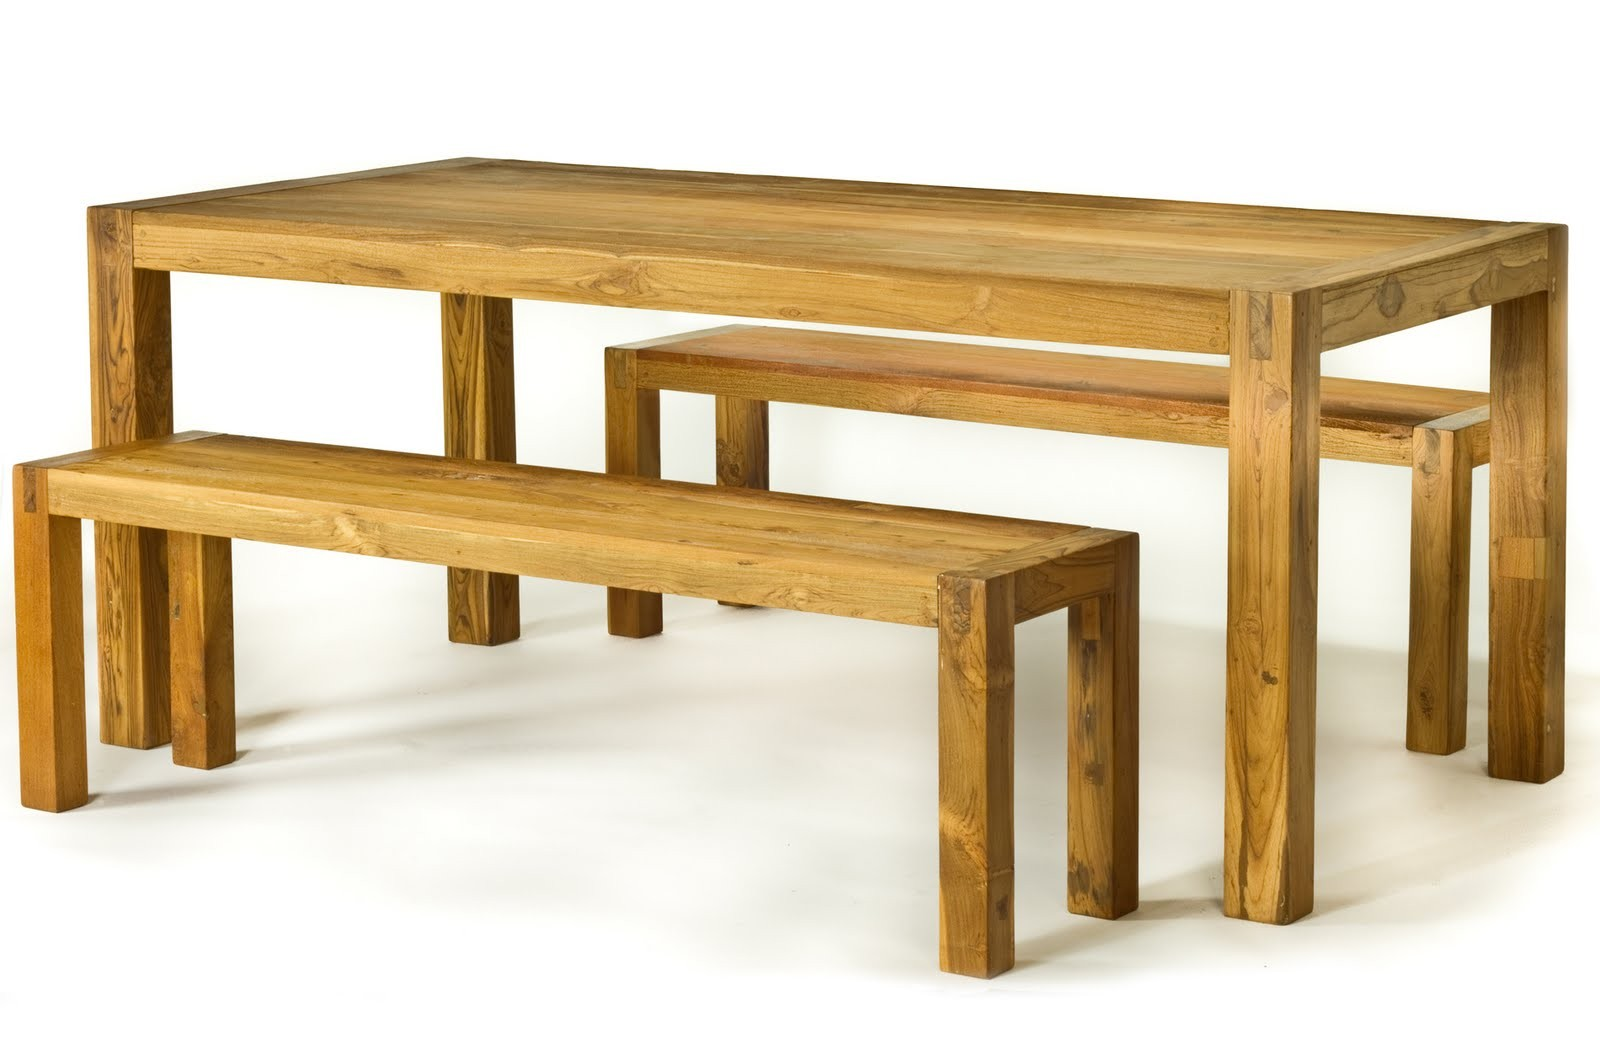 Baby green reclaimed wood dining tables Breakfast table with bench